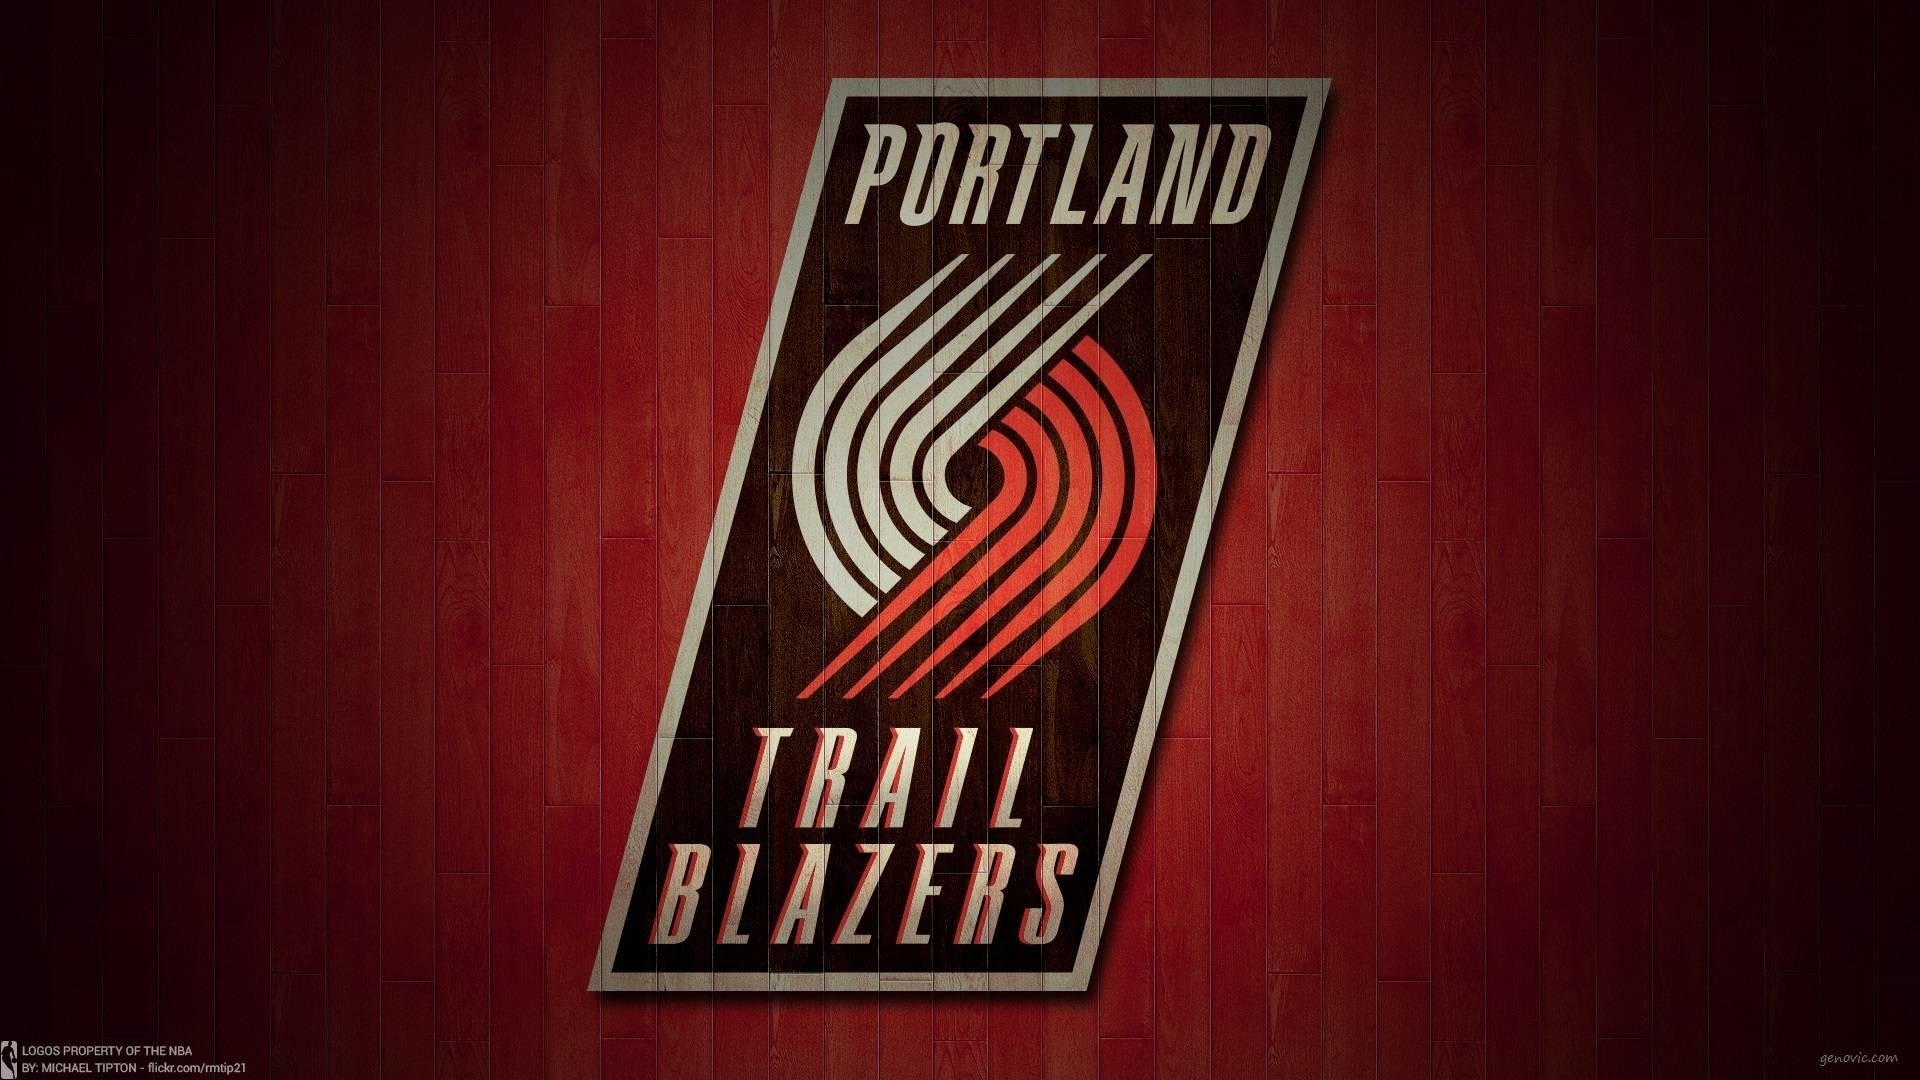 portland trail blazers wallpaper (74+ images)